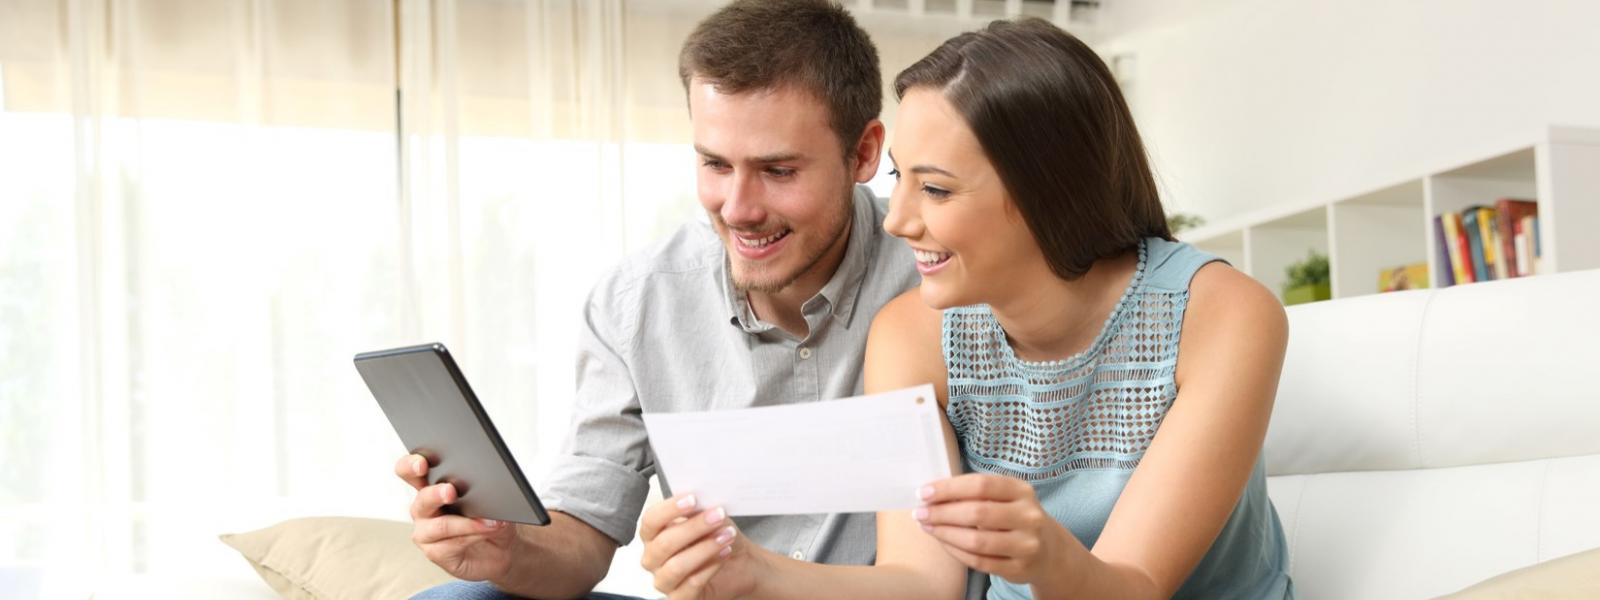 Couple looking at documents  - secure services specialises in card and document personalisation